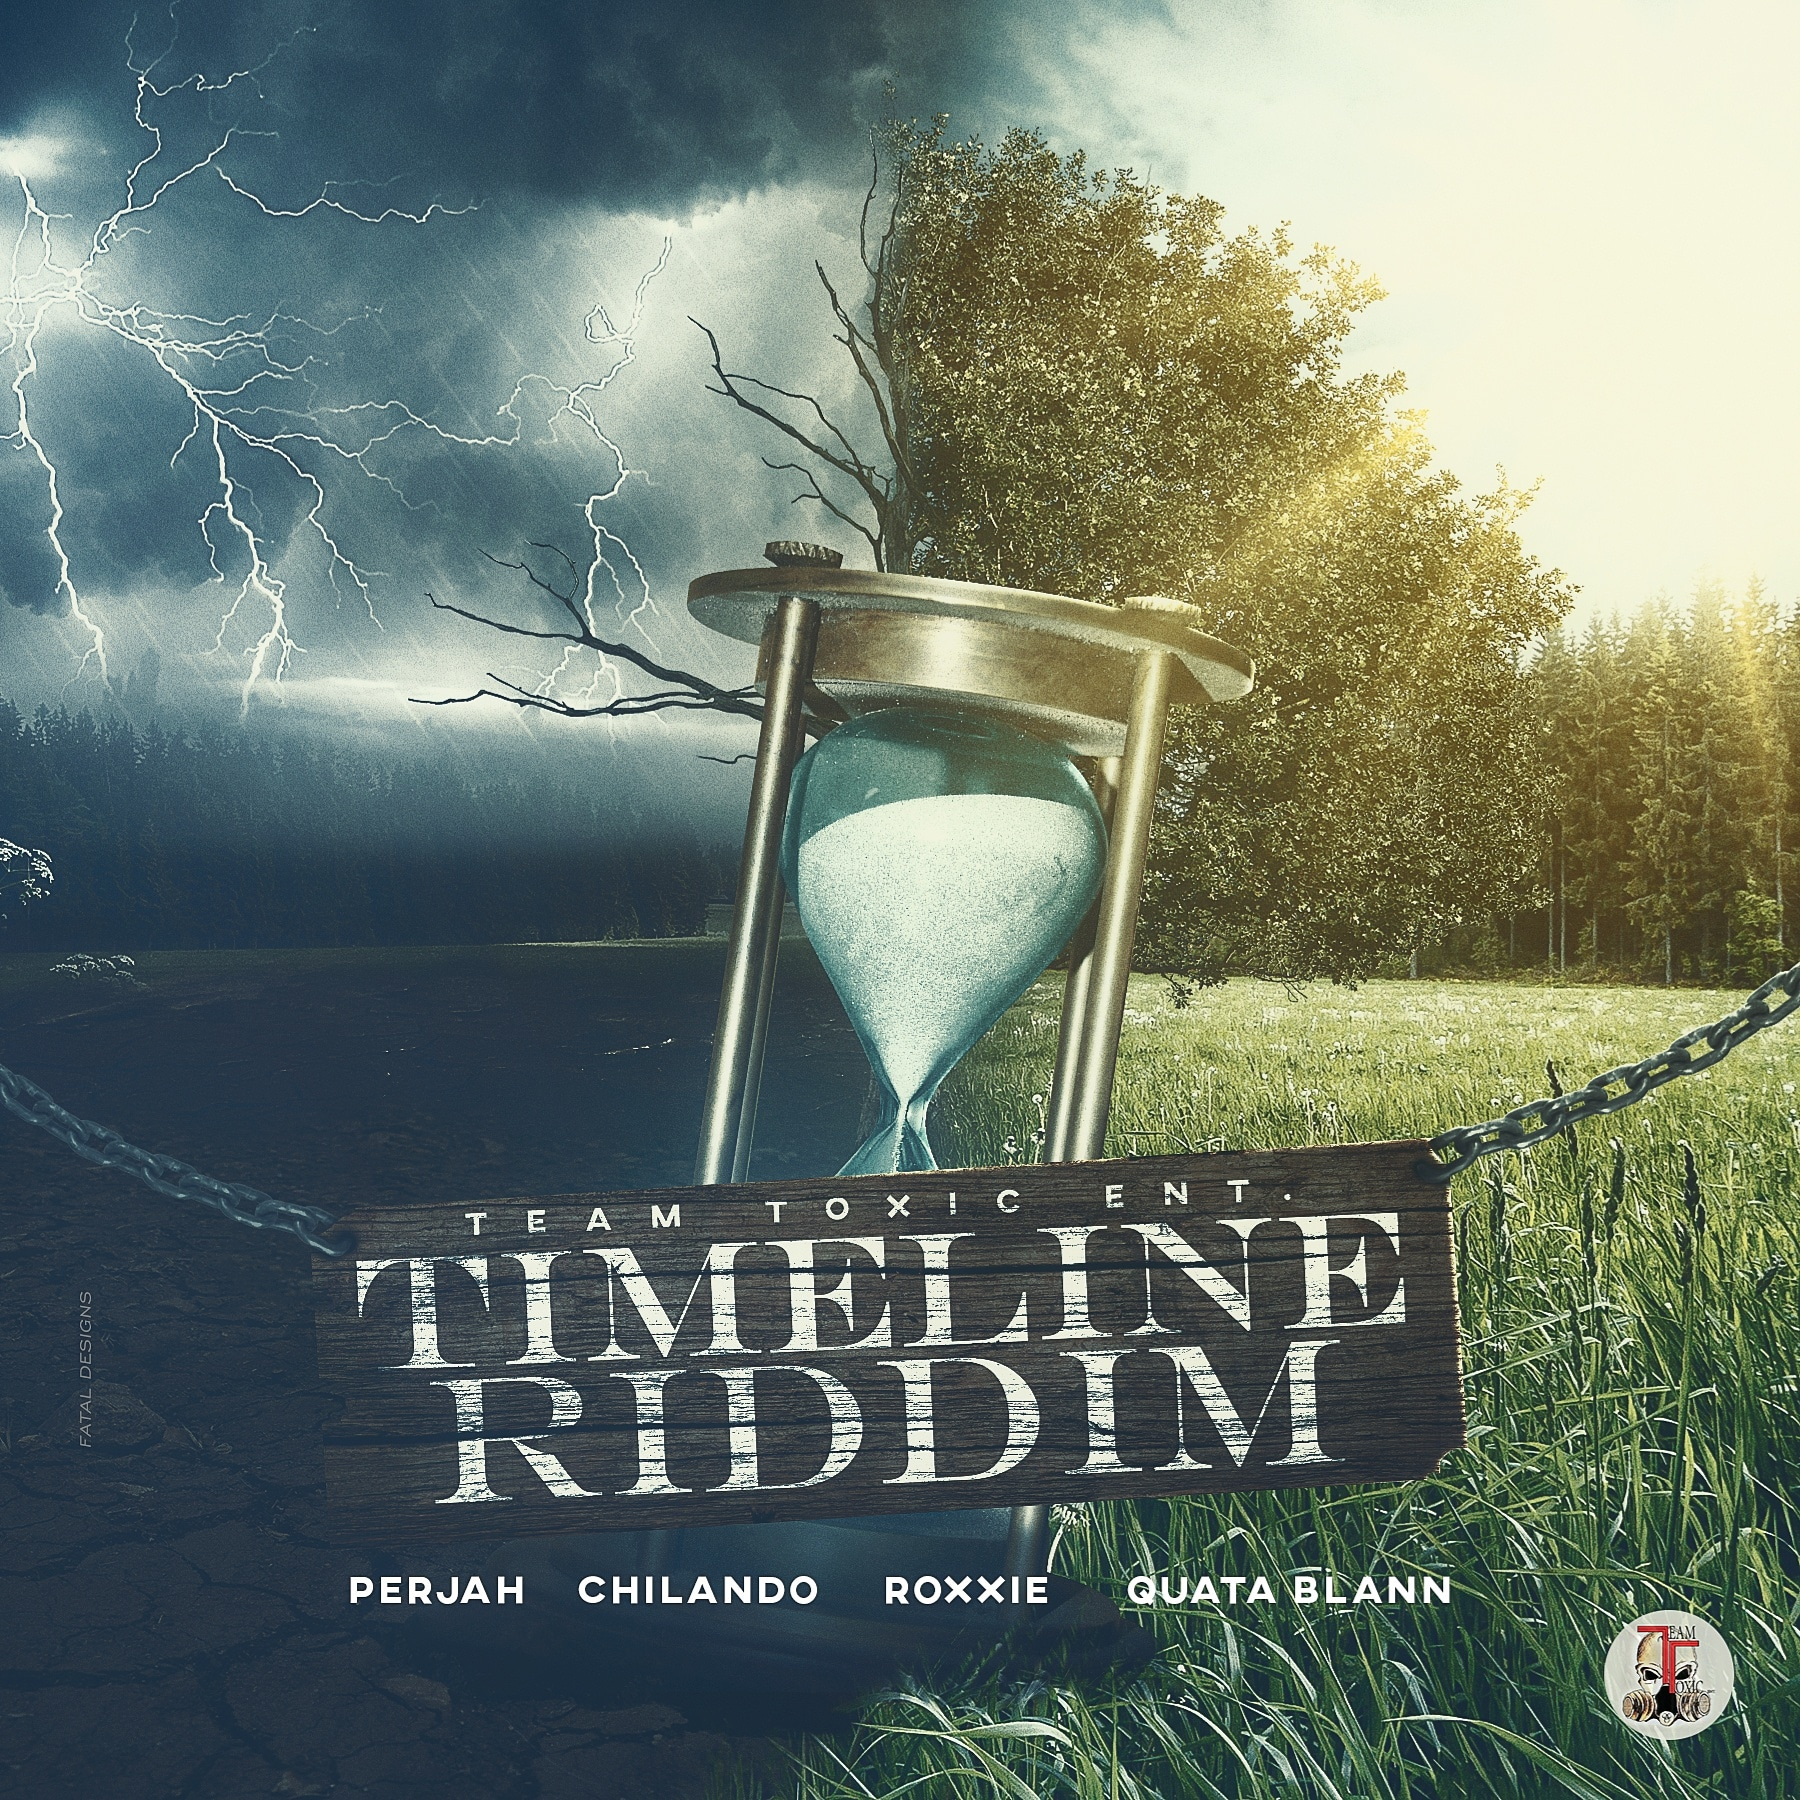 Team Toxic aiming for the stars with Timeline Riddim